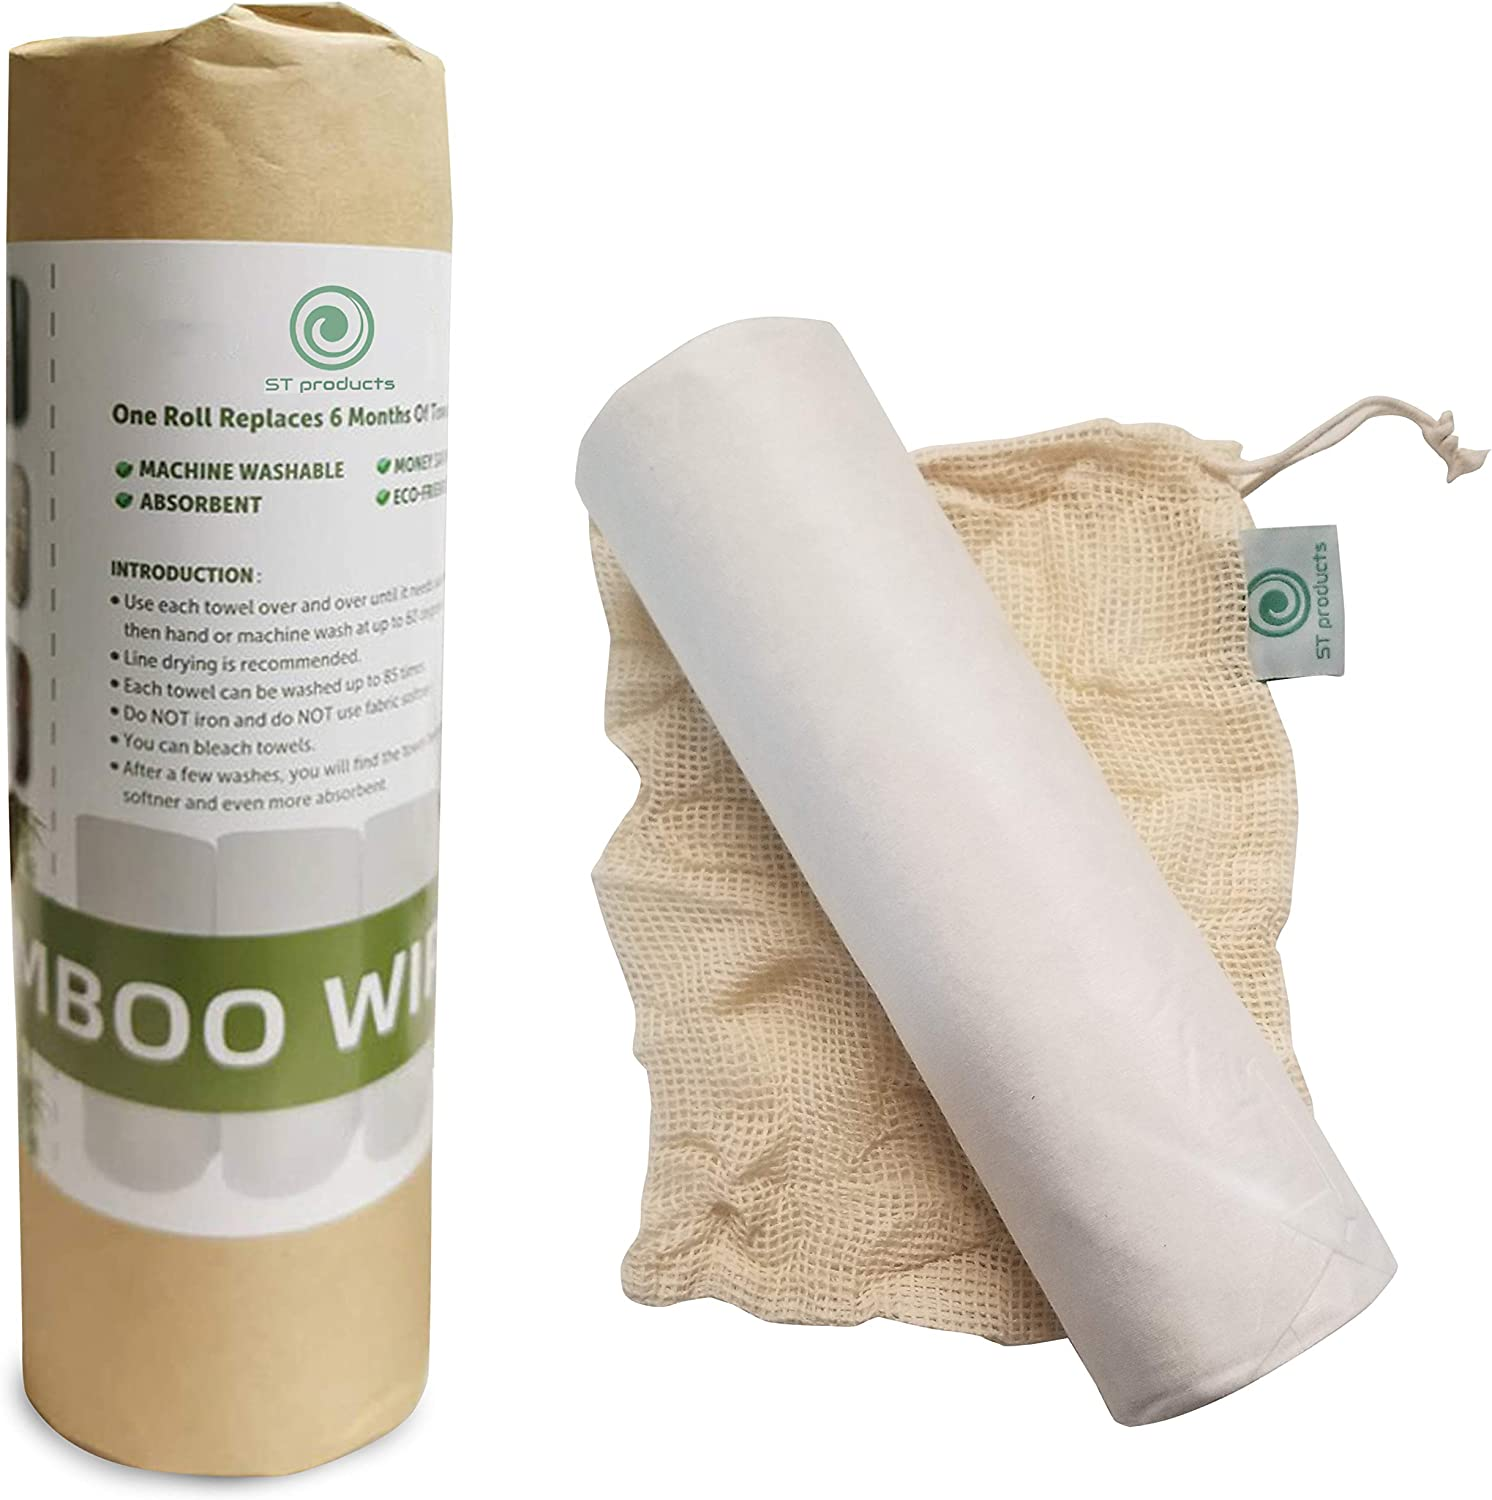 Bamboo Towels Heavy Duty Reusable Washable Industry No. 1 Machine Max 68% OFF Eco-Friendly